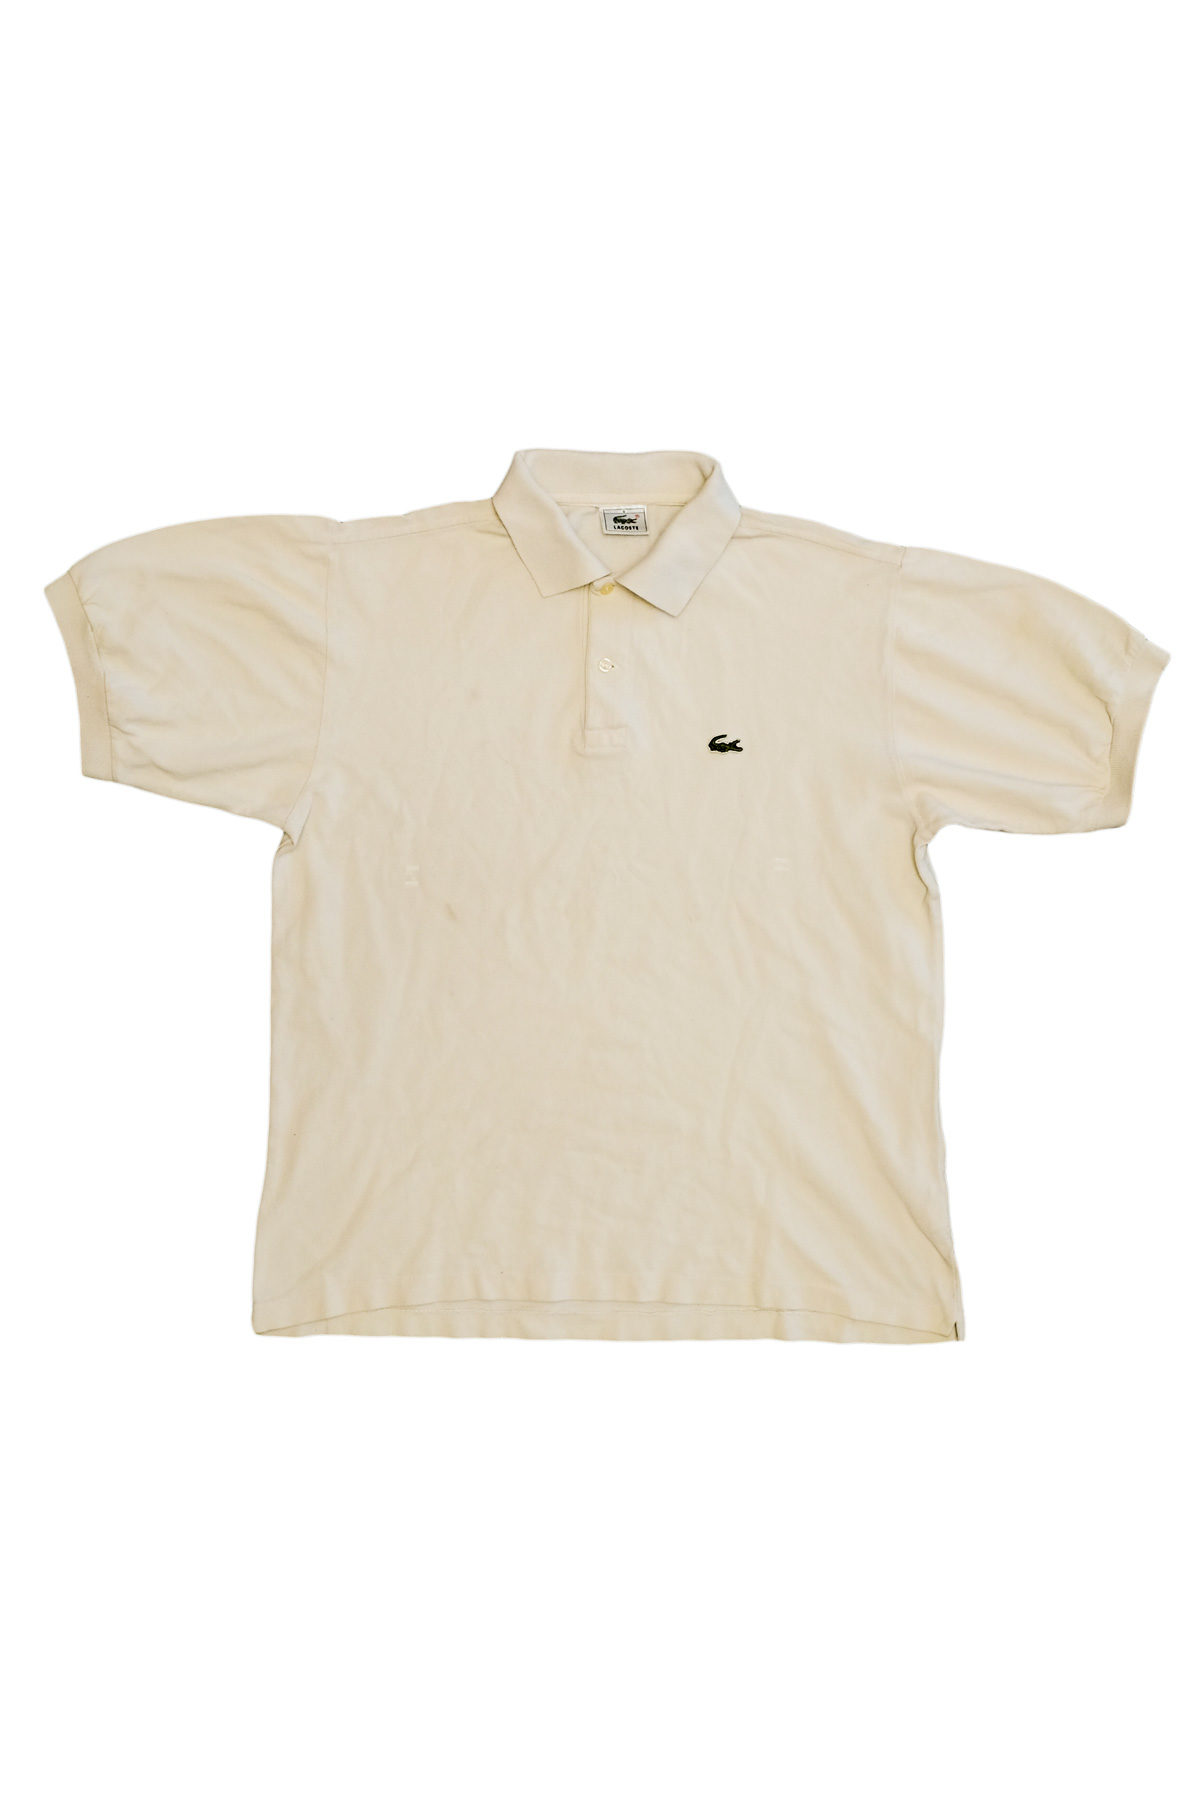 Lacoste POLO VINTAGE Ivory